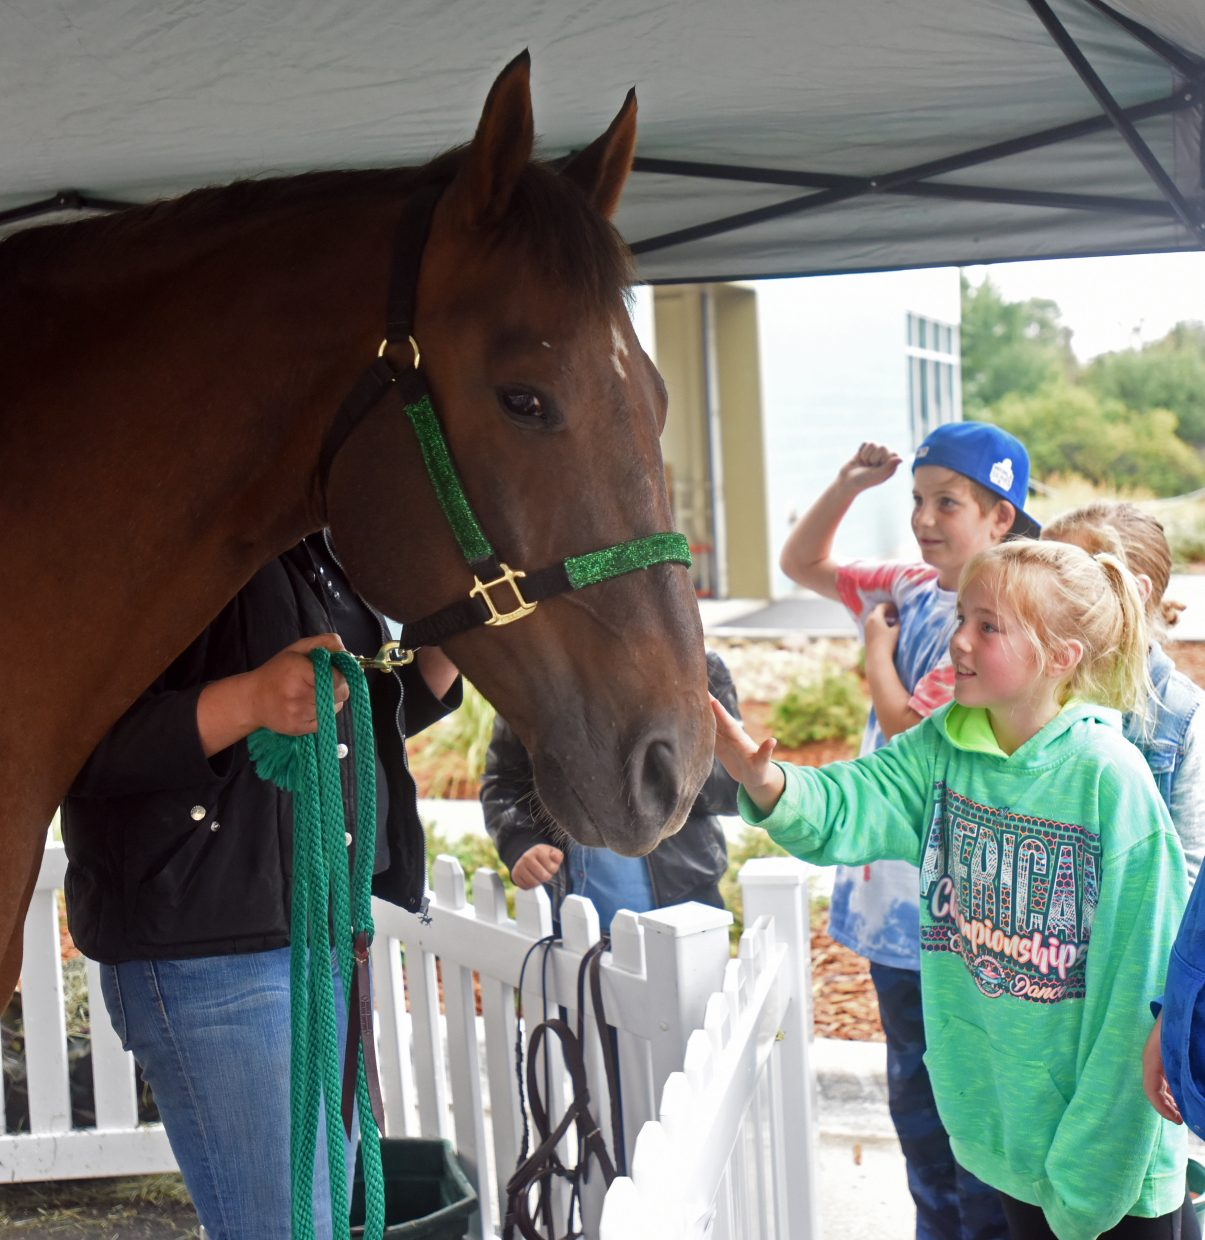 Ady Roles, 9, pets the horse at the agriculture education fair on Sept. 25 at the Windsor Recreation Center in Windsor, Colo.